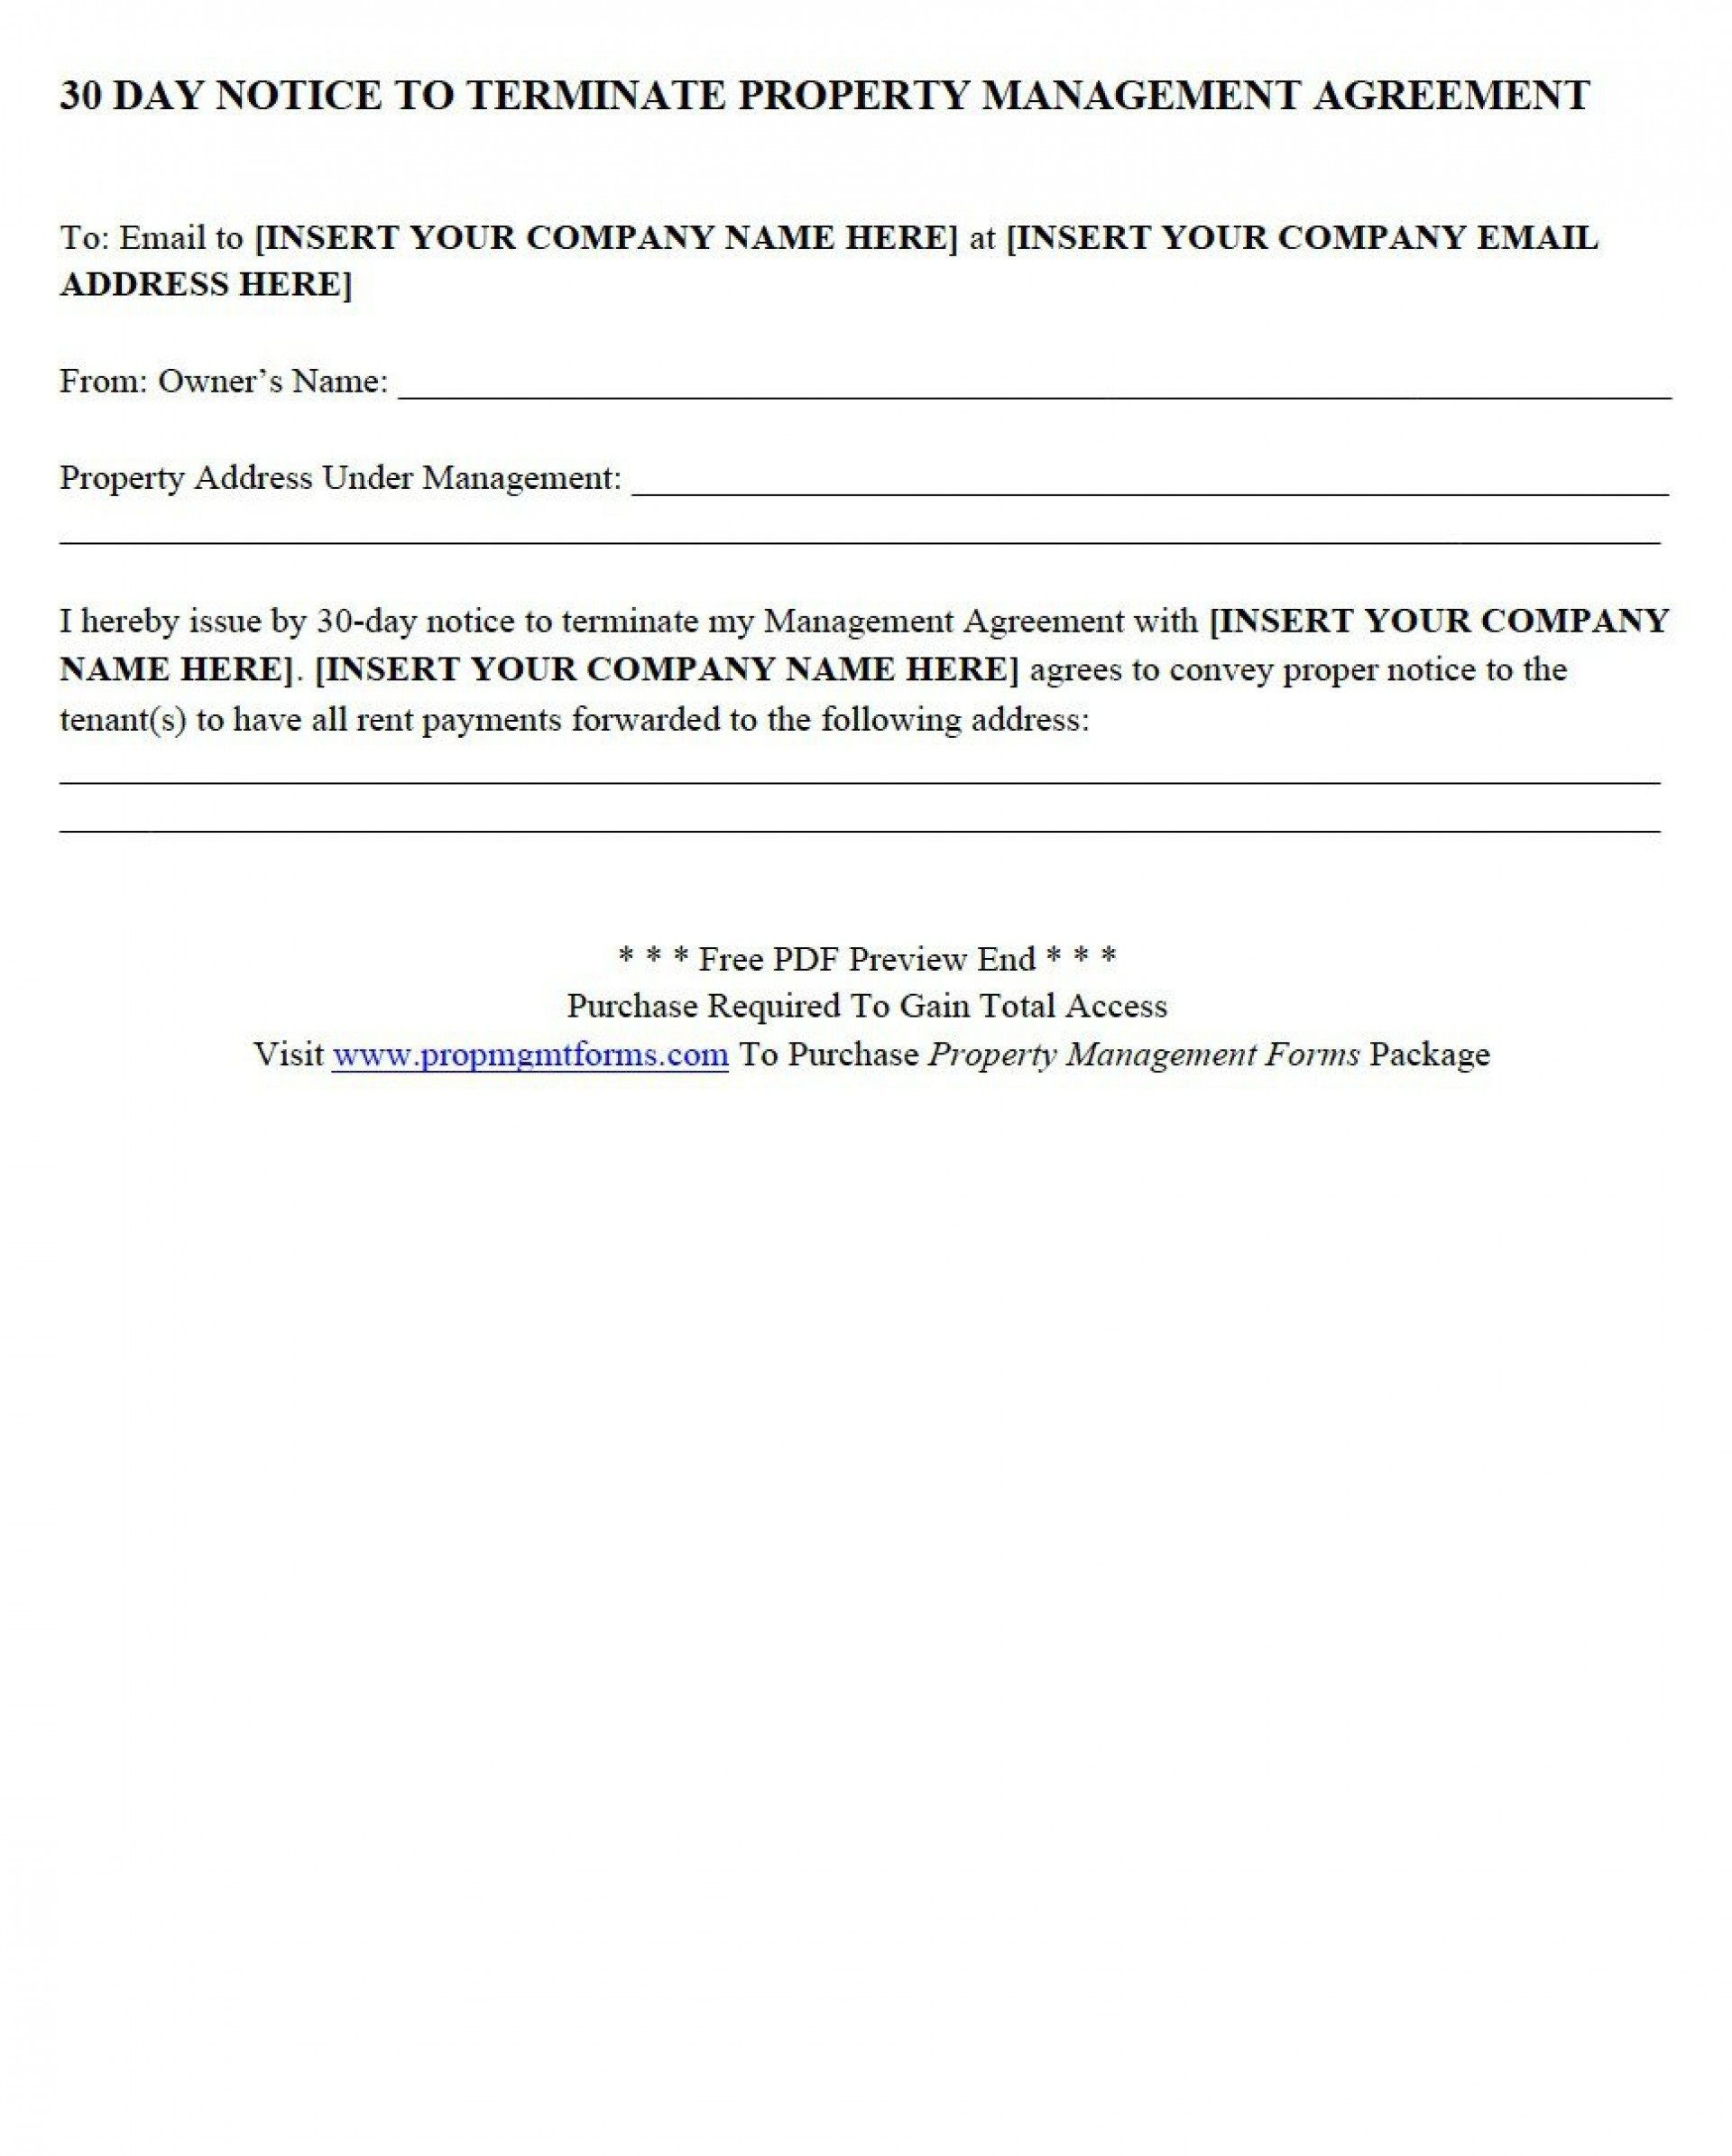 000 Stupendou Property Management Contract Template Ontario Image 1920